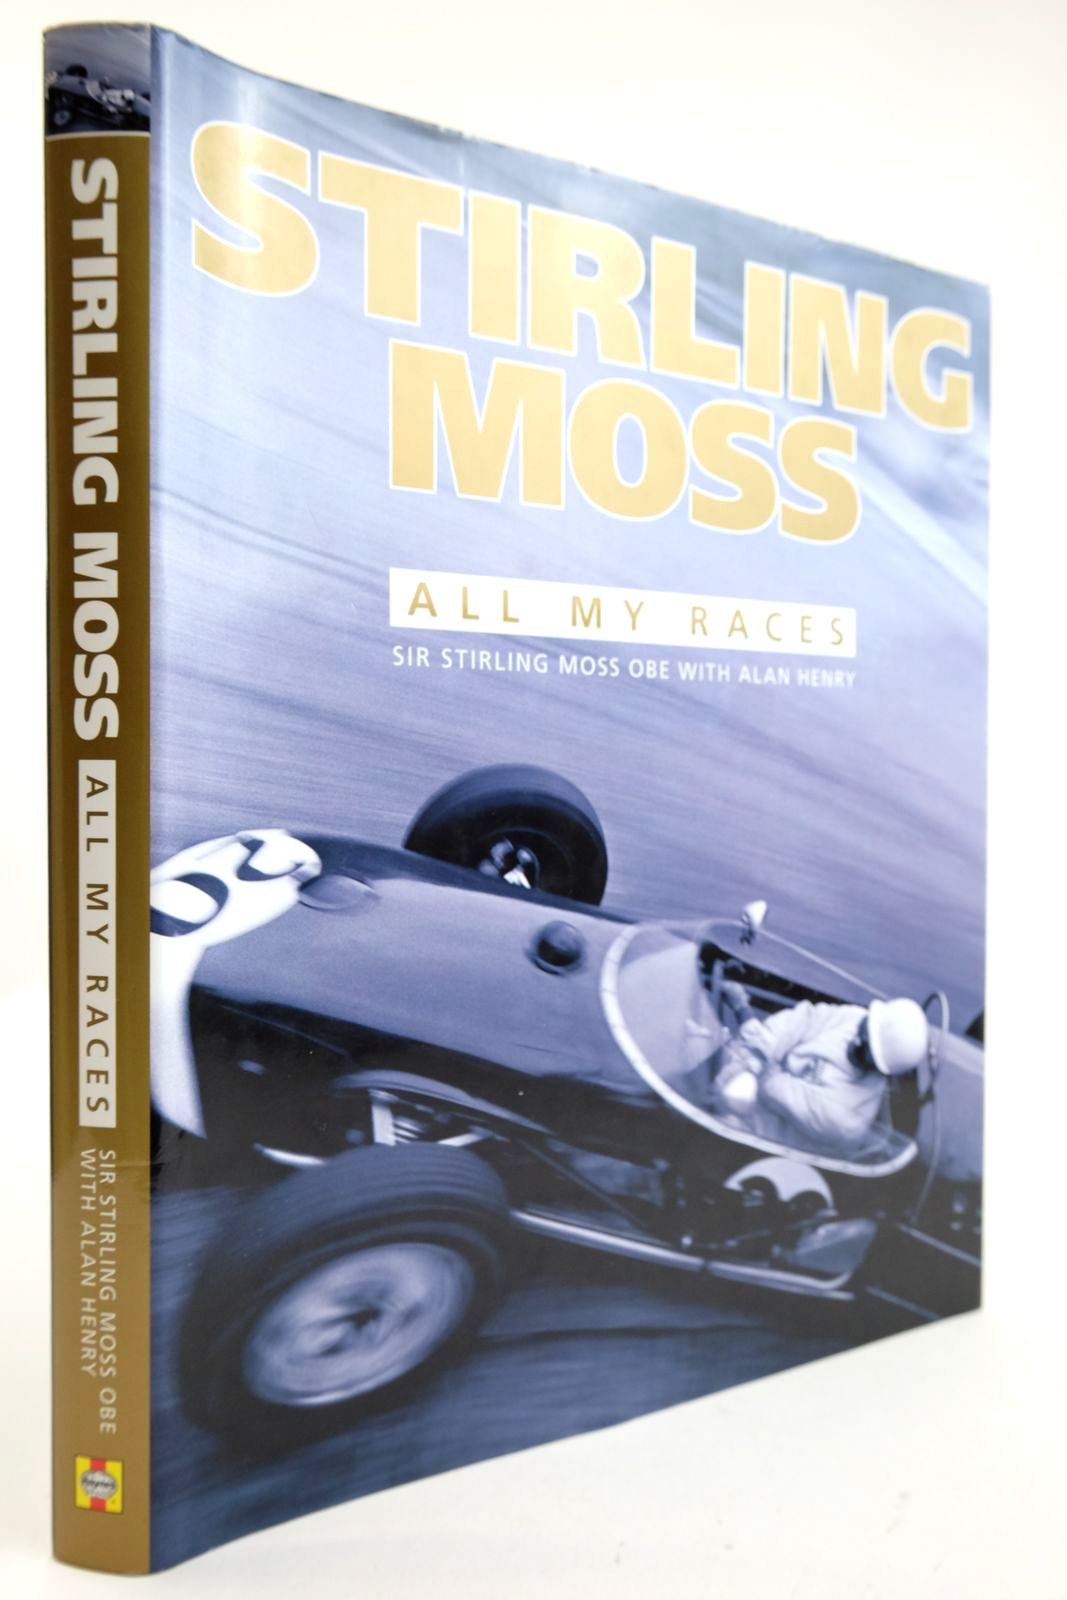 Photo of STIRLING MOSS: ALL MY RACES written by Moss, Stirling Henry, Alan published by Haynes Publishing (STOCK CODE: 2132931)  for sale by Stella & Rose's Books